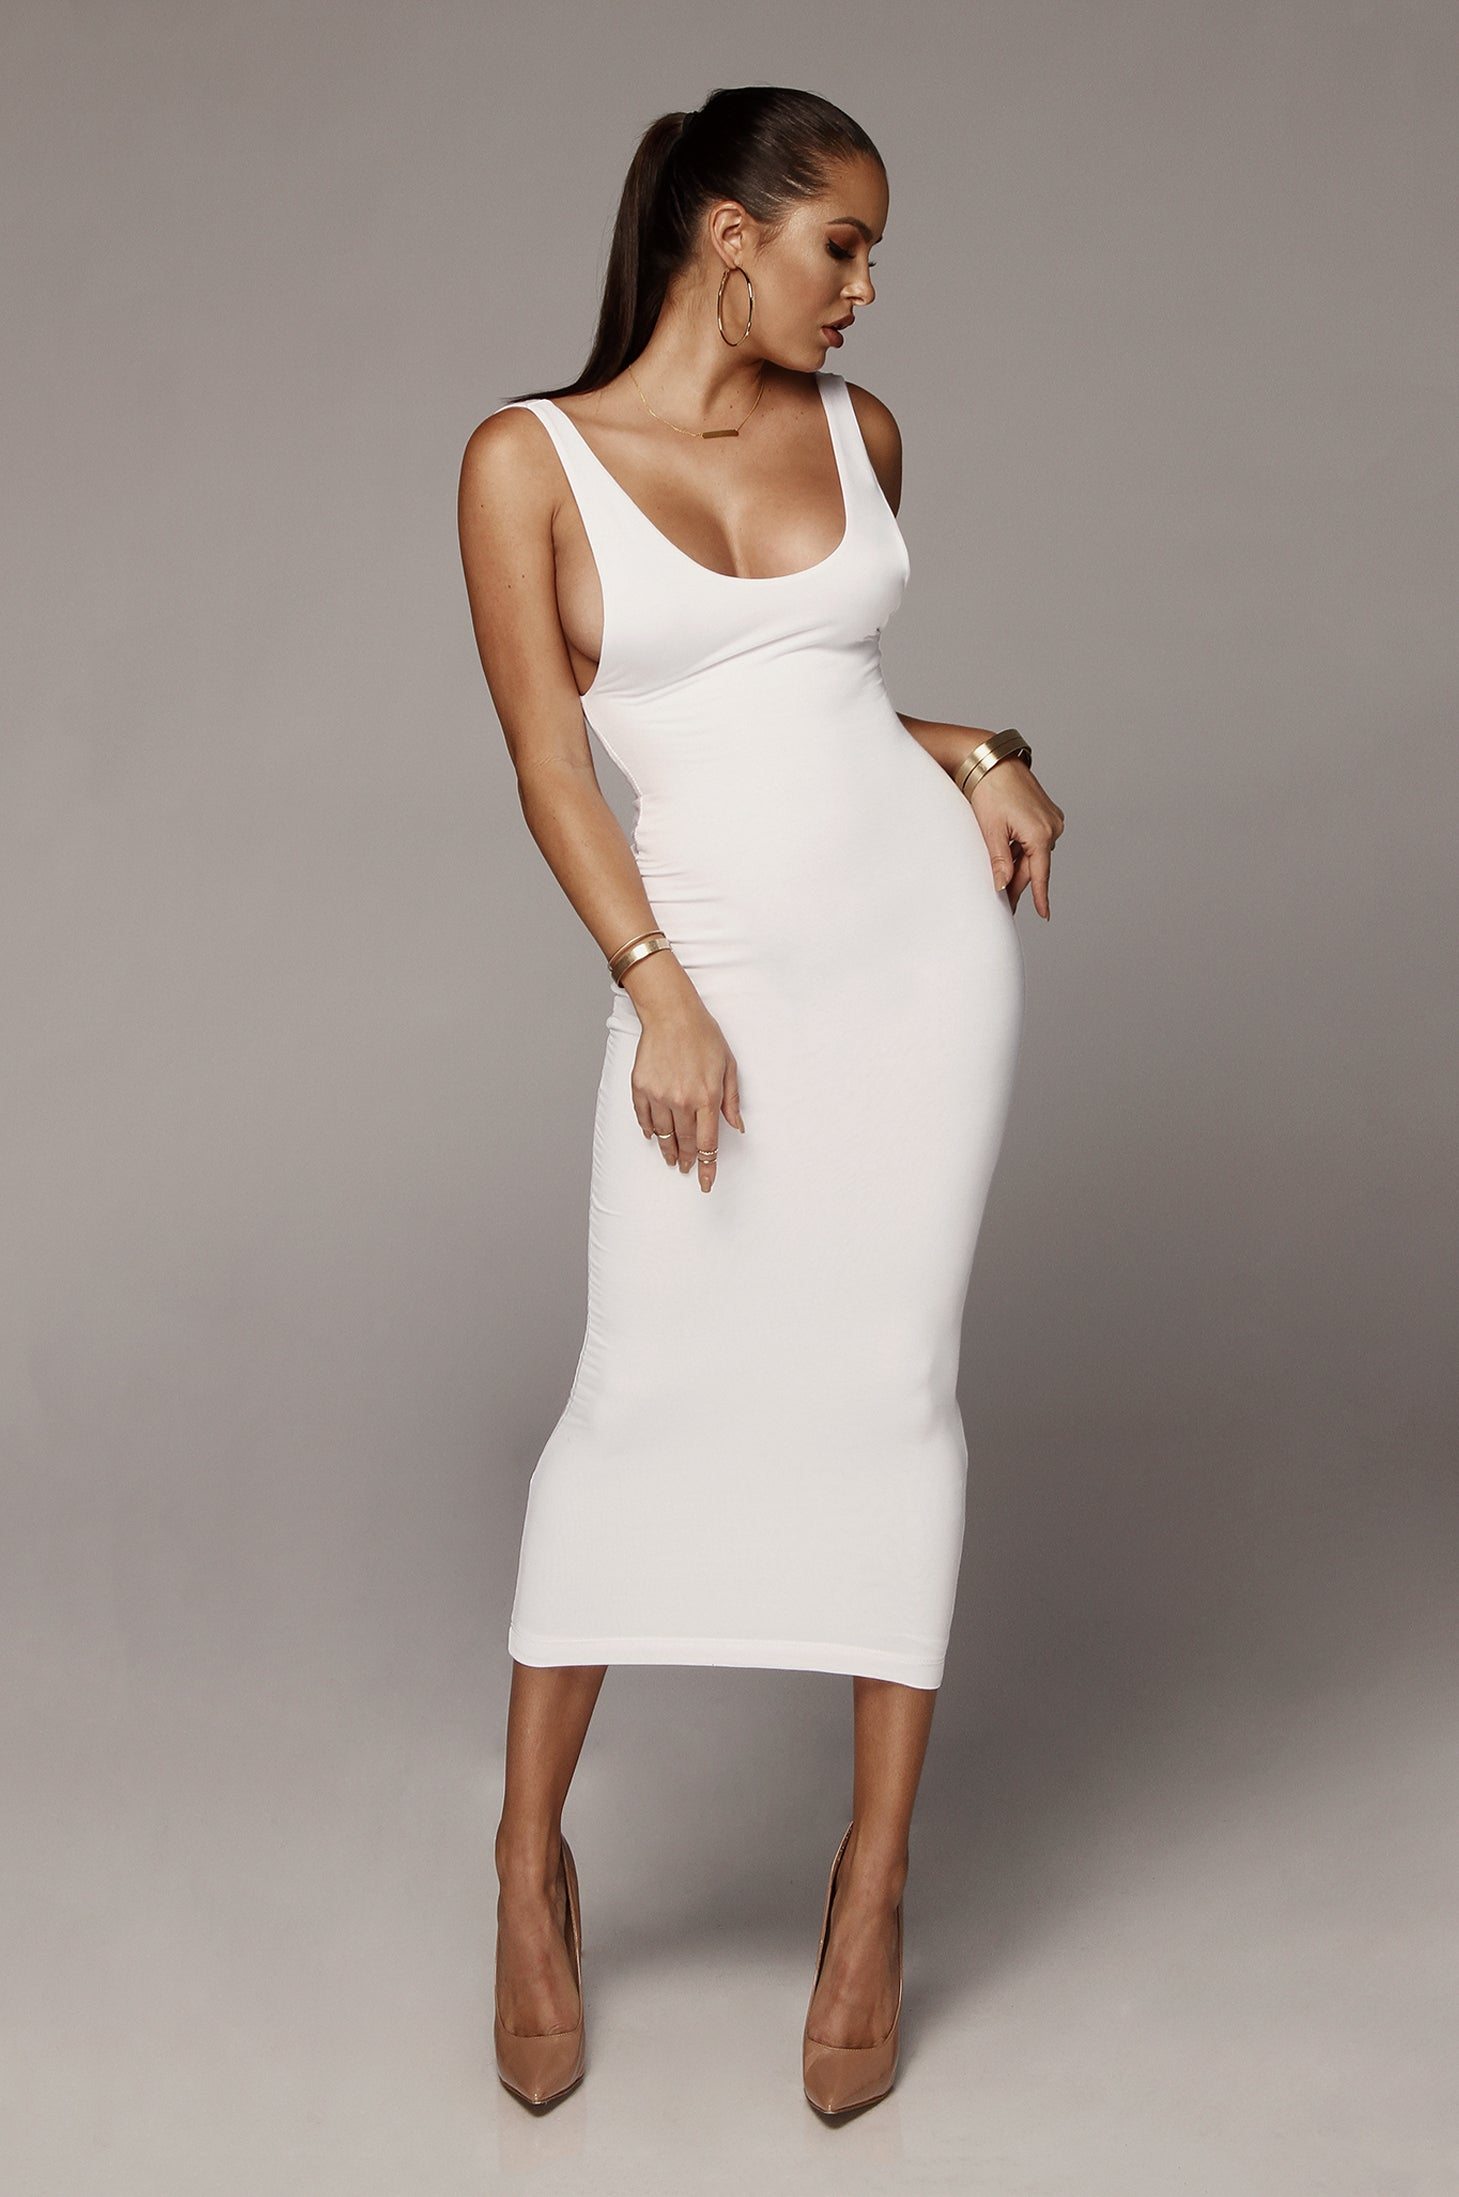 White Perfection JLUXBASIX Low Side Dress